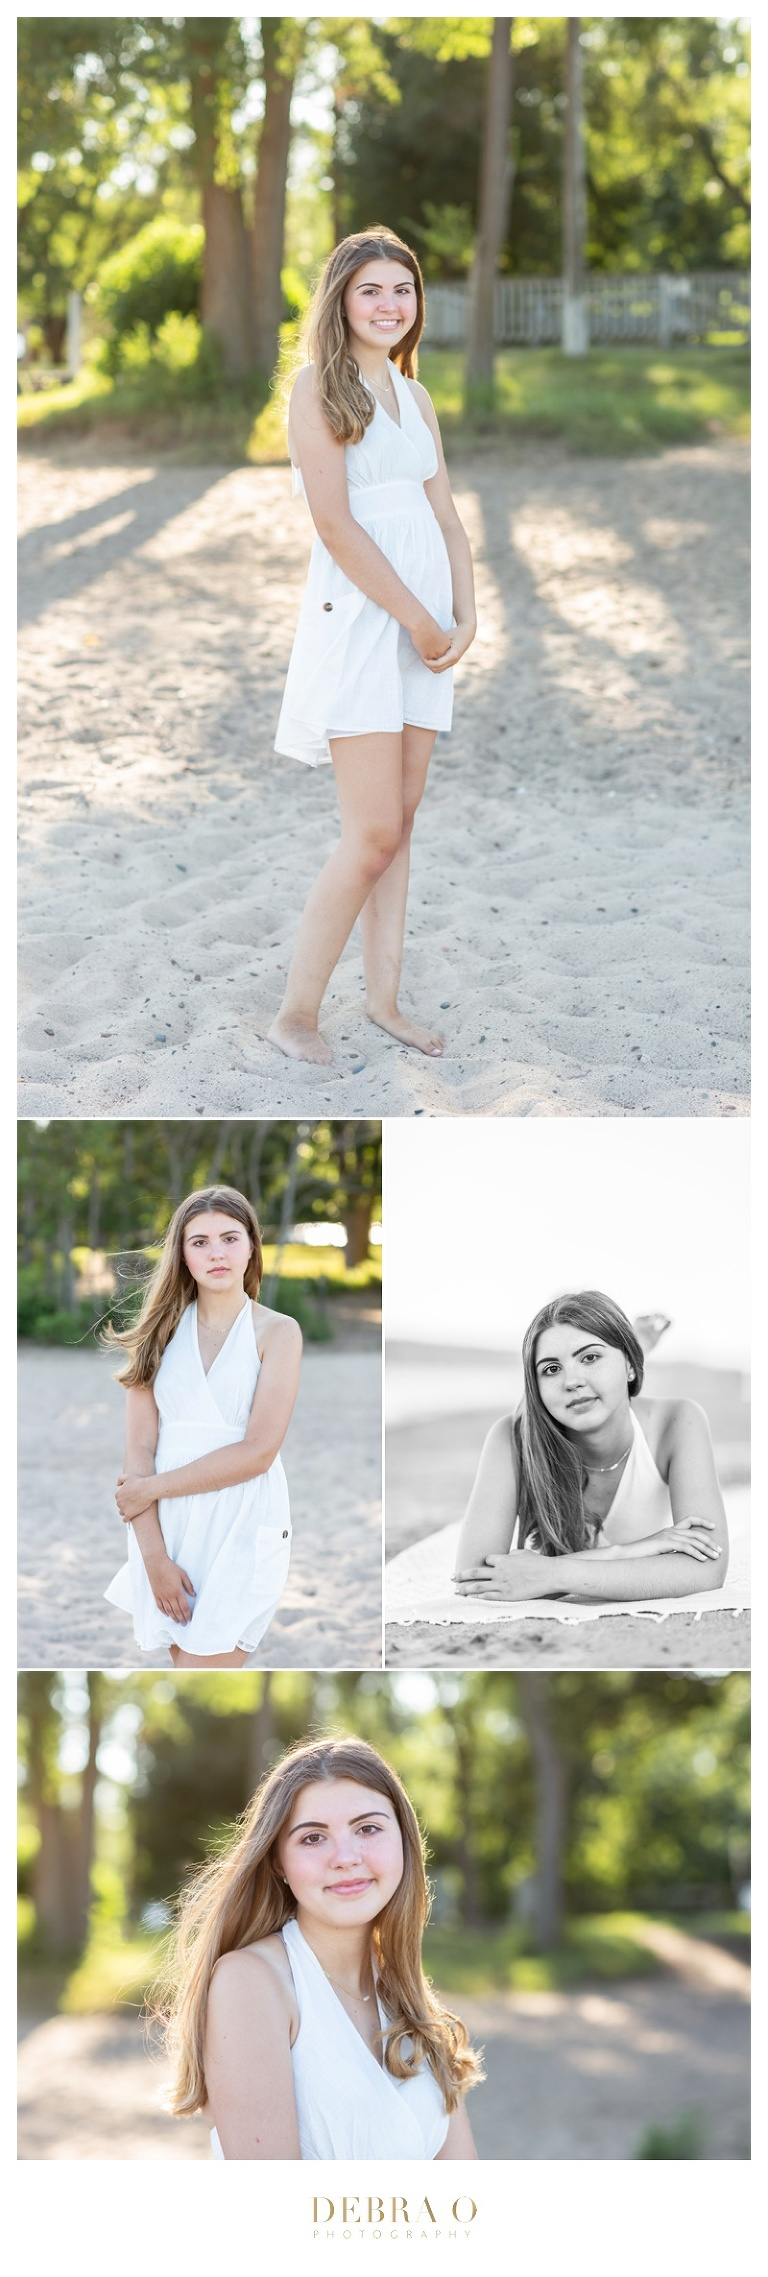 Senior portrait photographer, Debra O Photography, Hudson senior portrait photographer, Stillwater senior portrait photographer, Minneapolis senior portrait photographer, senior beach session,